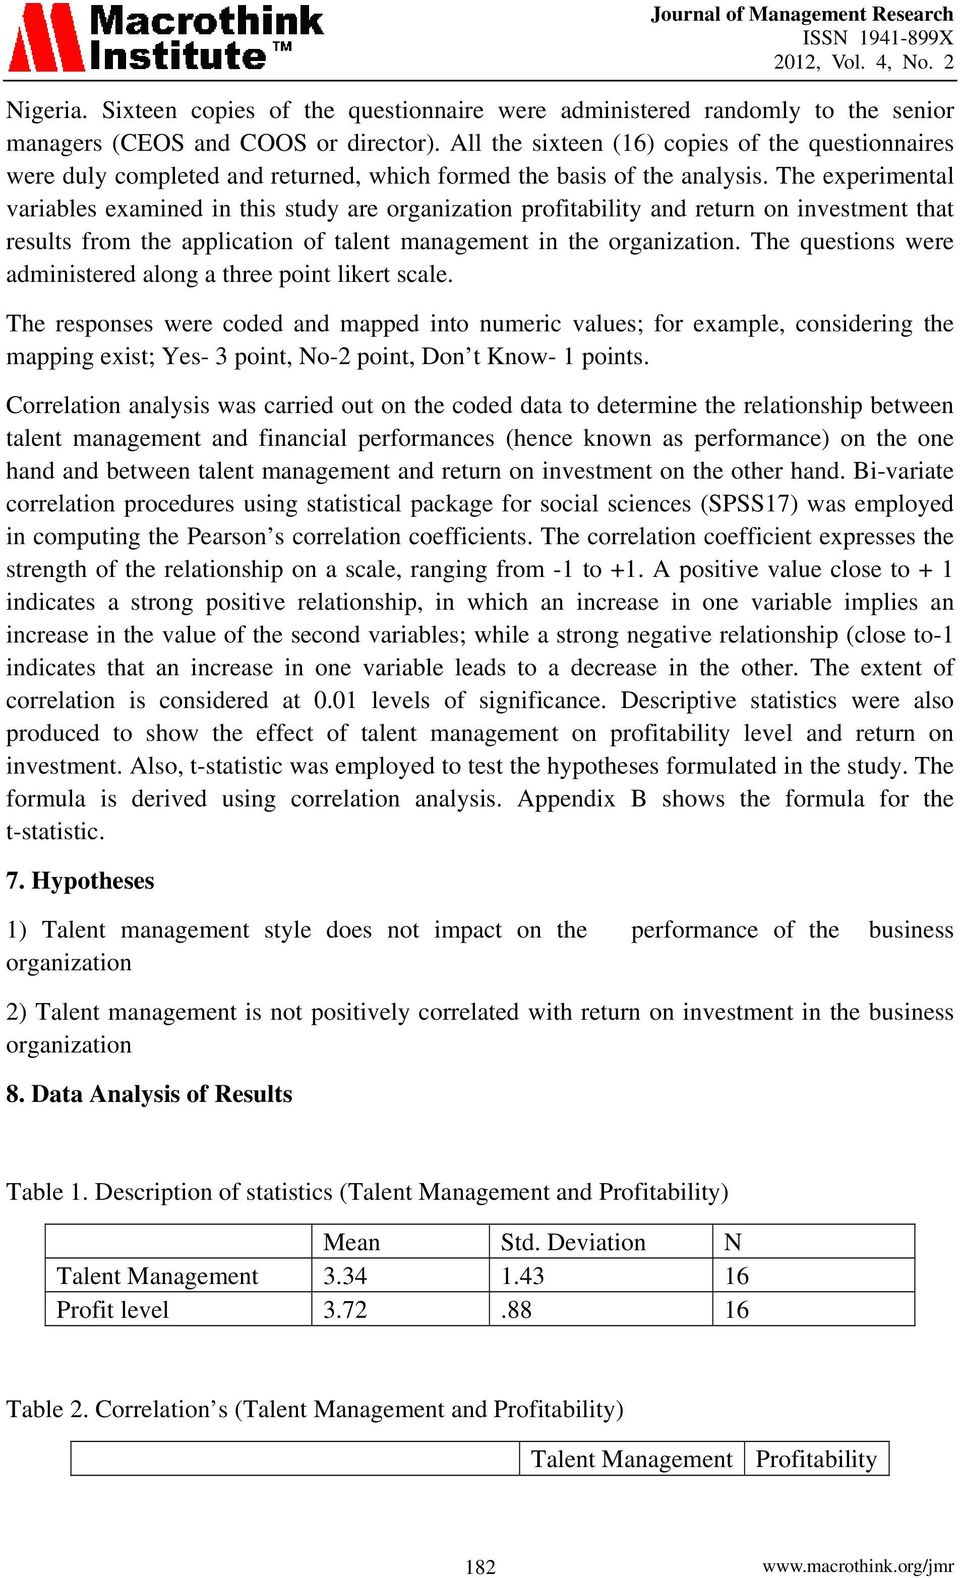 The experimental variables examined in this study are organization profitability and return on investment that results from the application of talent management in the organization.